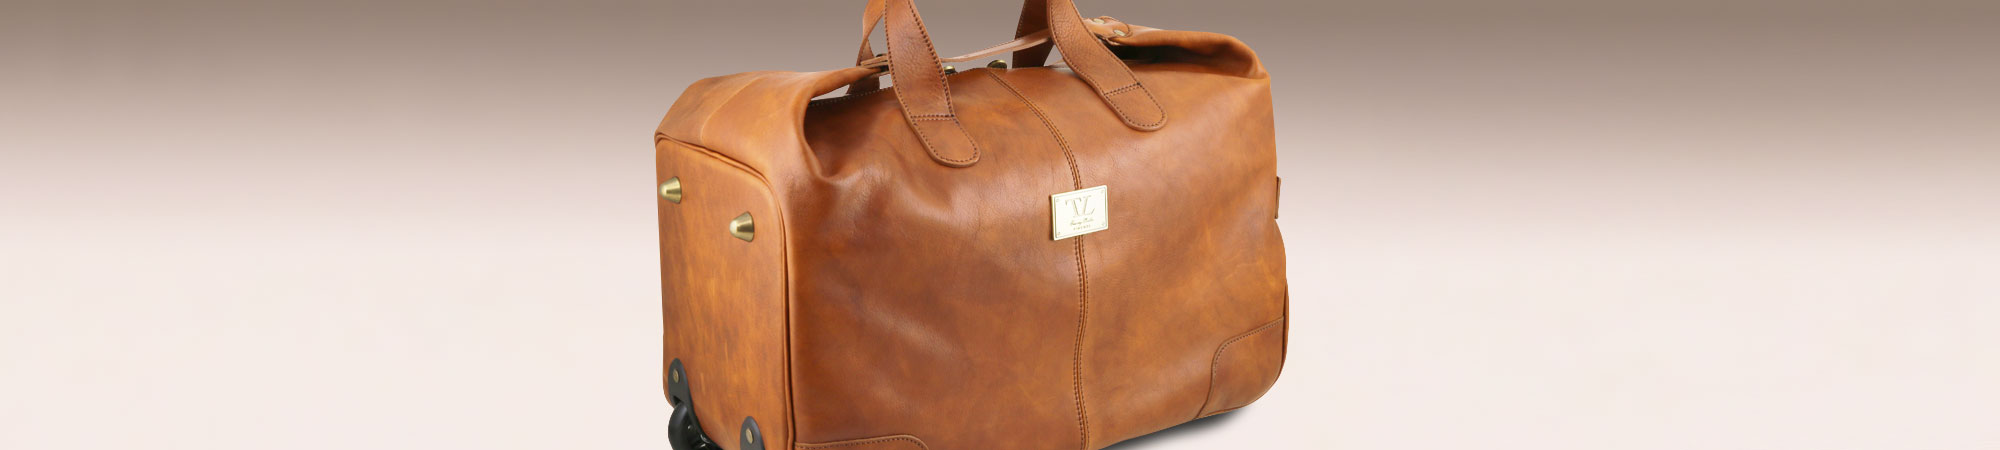 14e42caad7c9 Traveller Collection Buy Online at Tuscany Leather